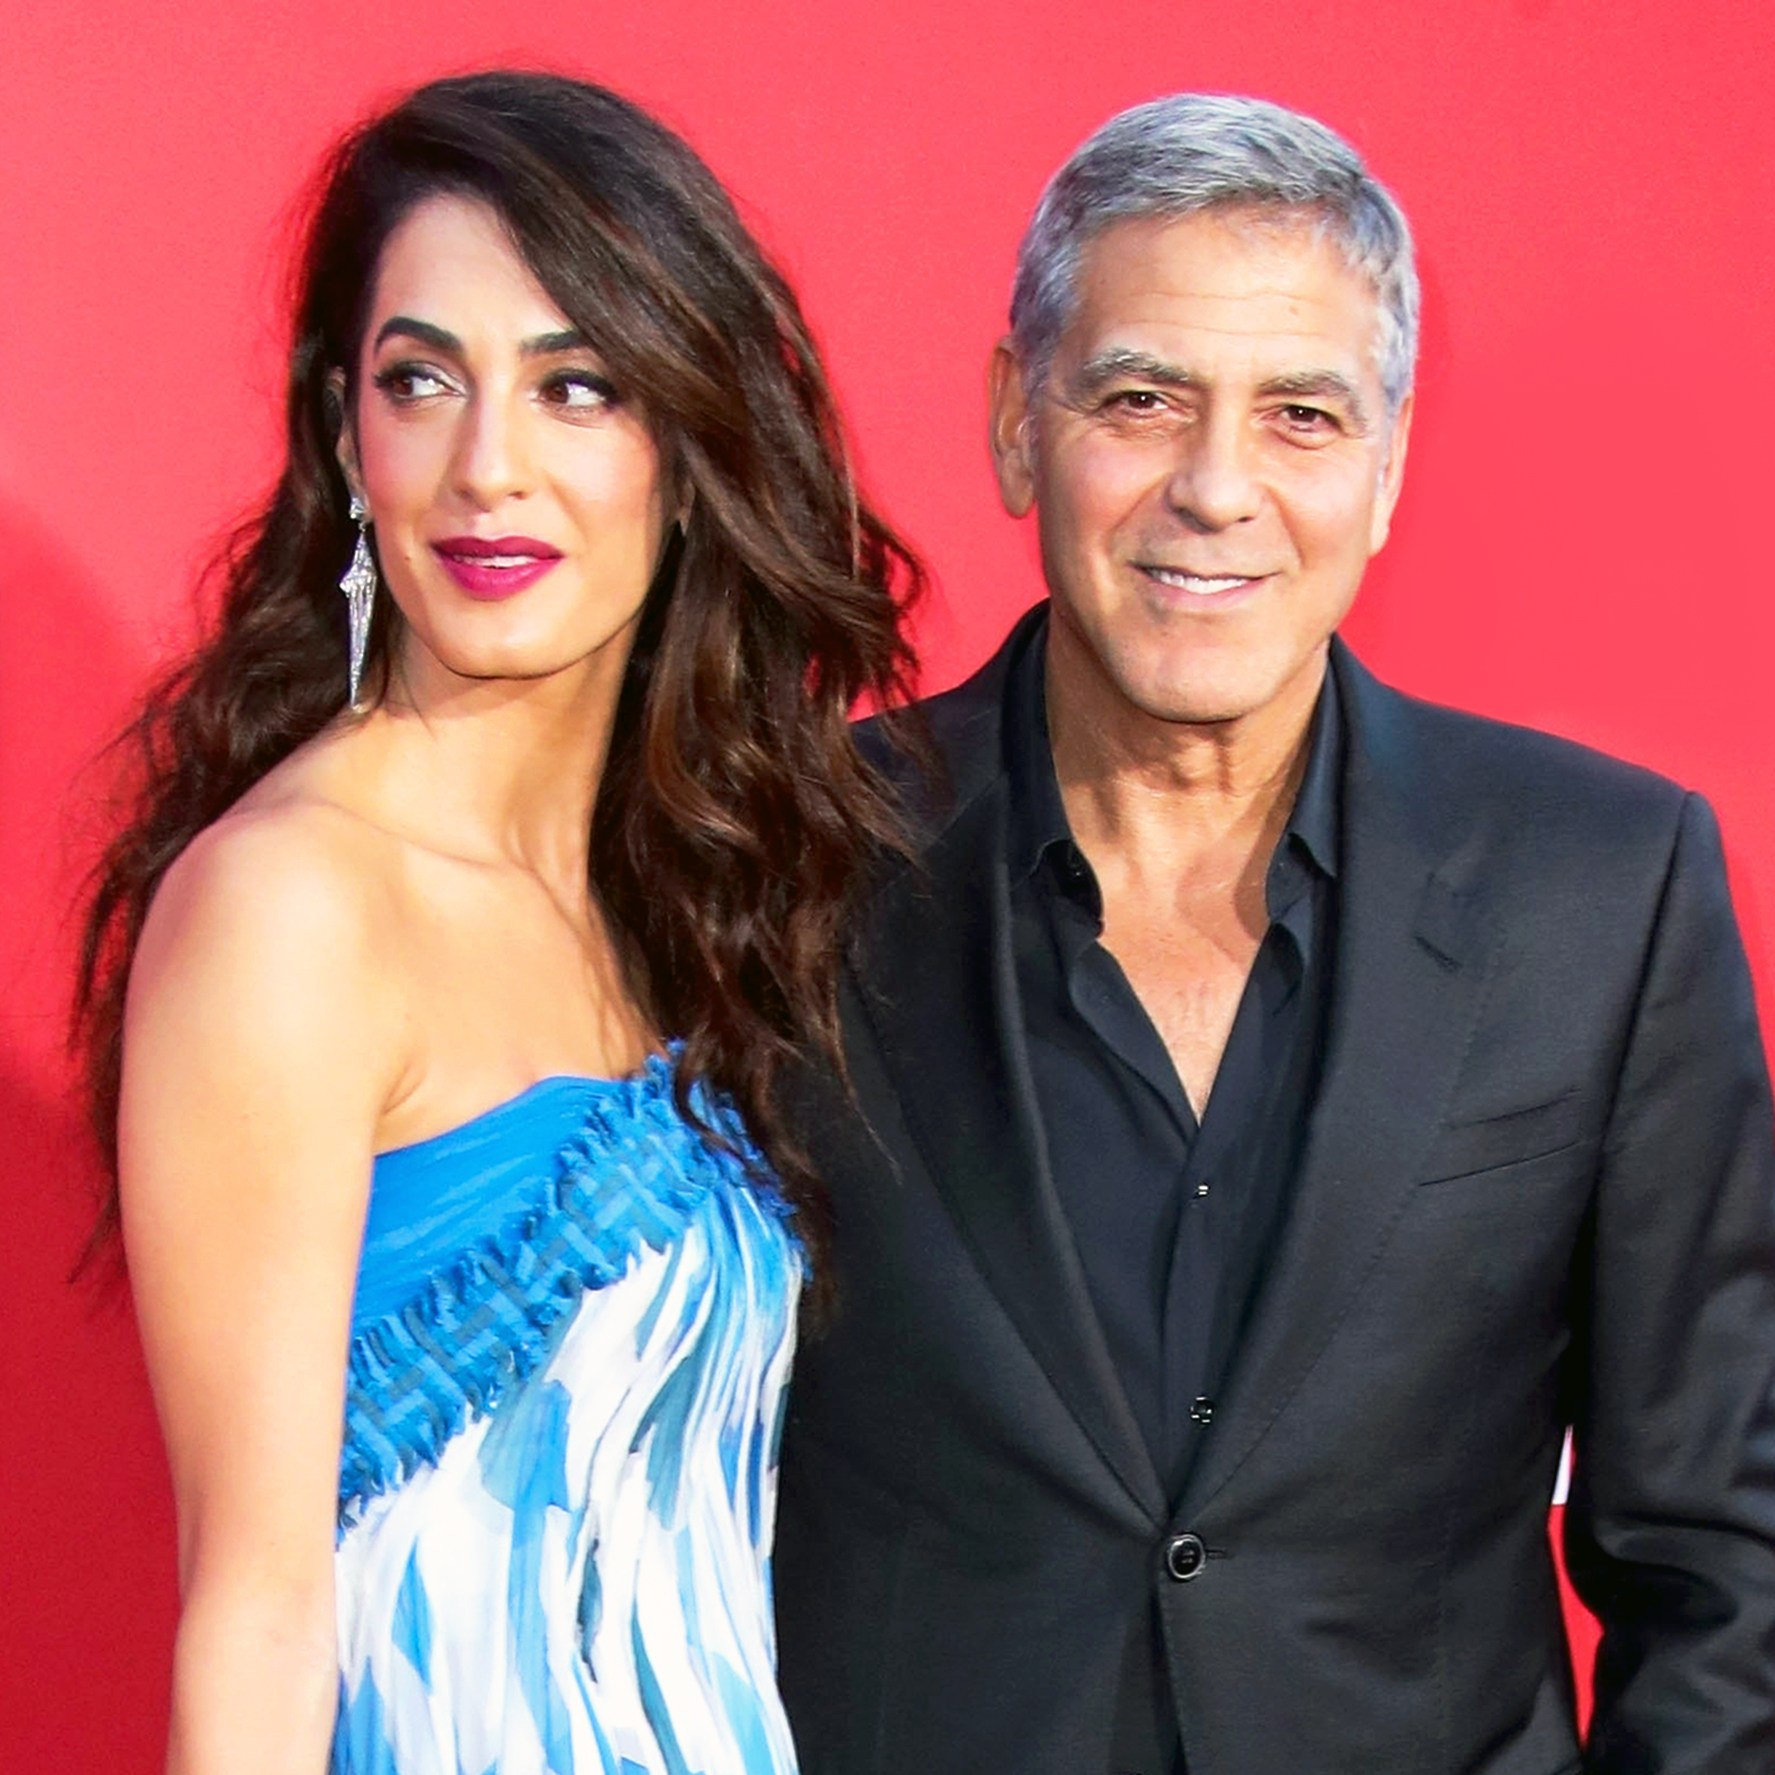 George Clooney and wife Amal arrive at the 2017 premiere of Paramount Pictures' 'Suburbicon' at Regency Village Theatre in Westwood, California.